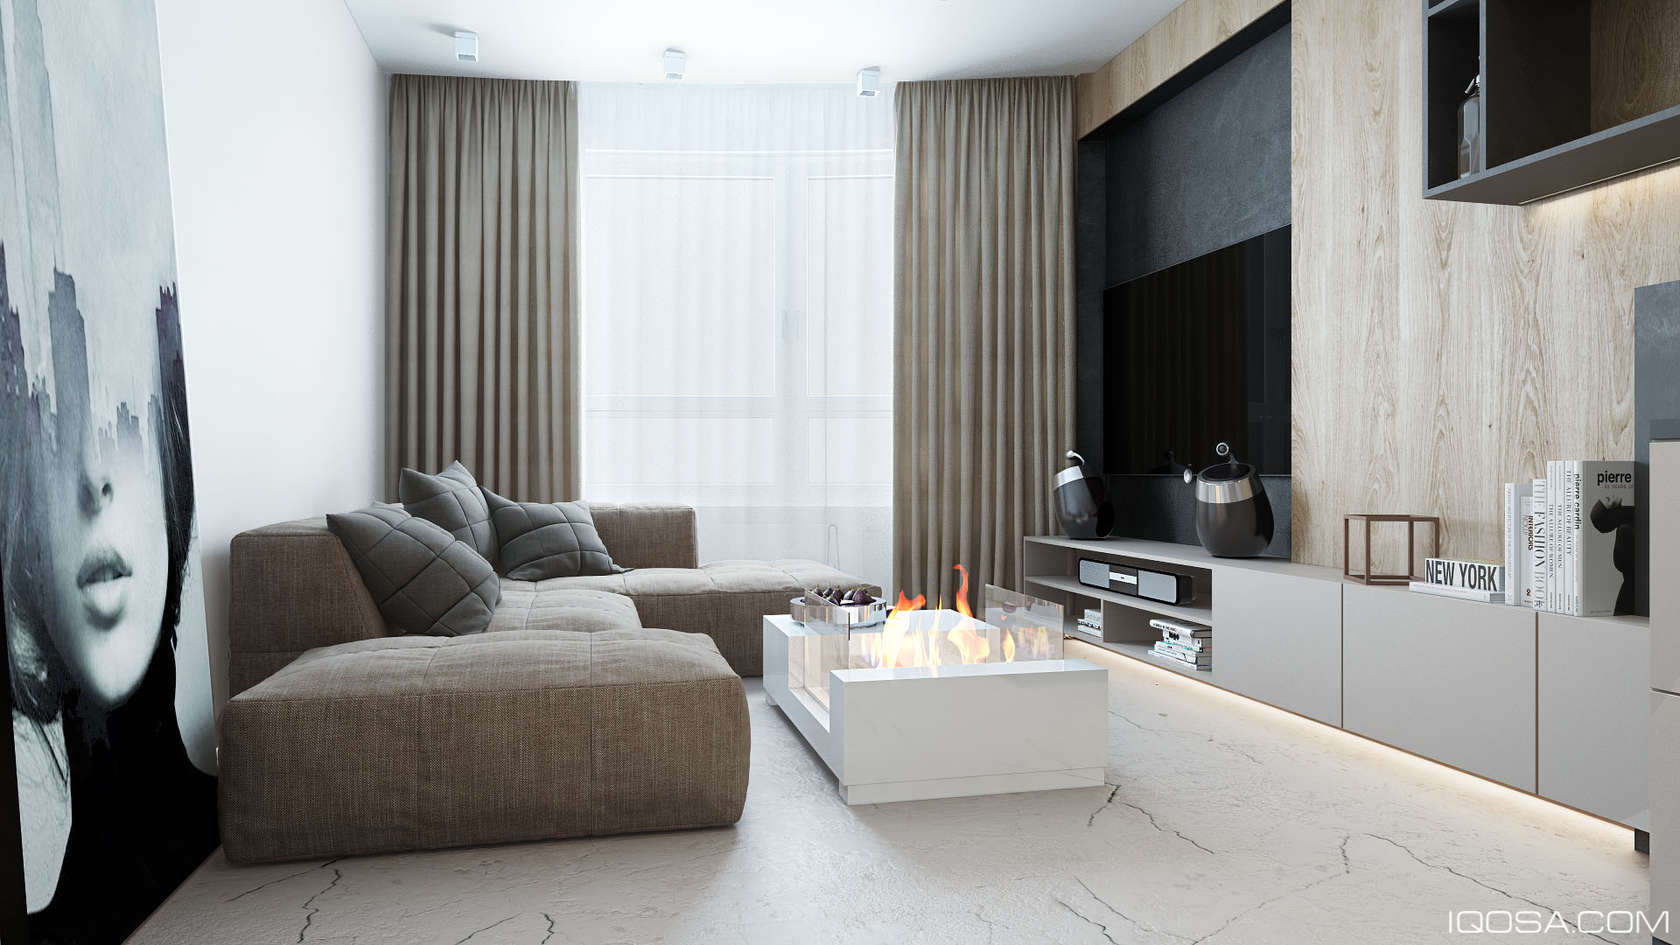 An approachable take on luxury apartment design Interior design ideas for the home